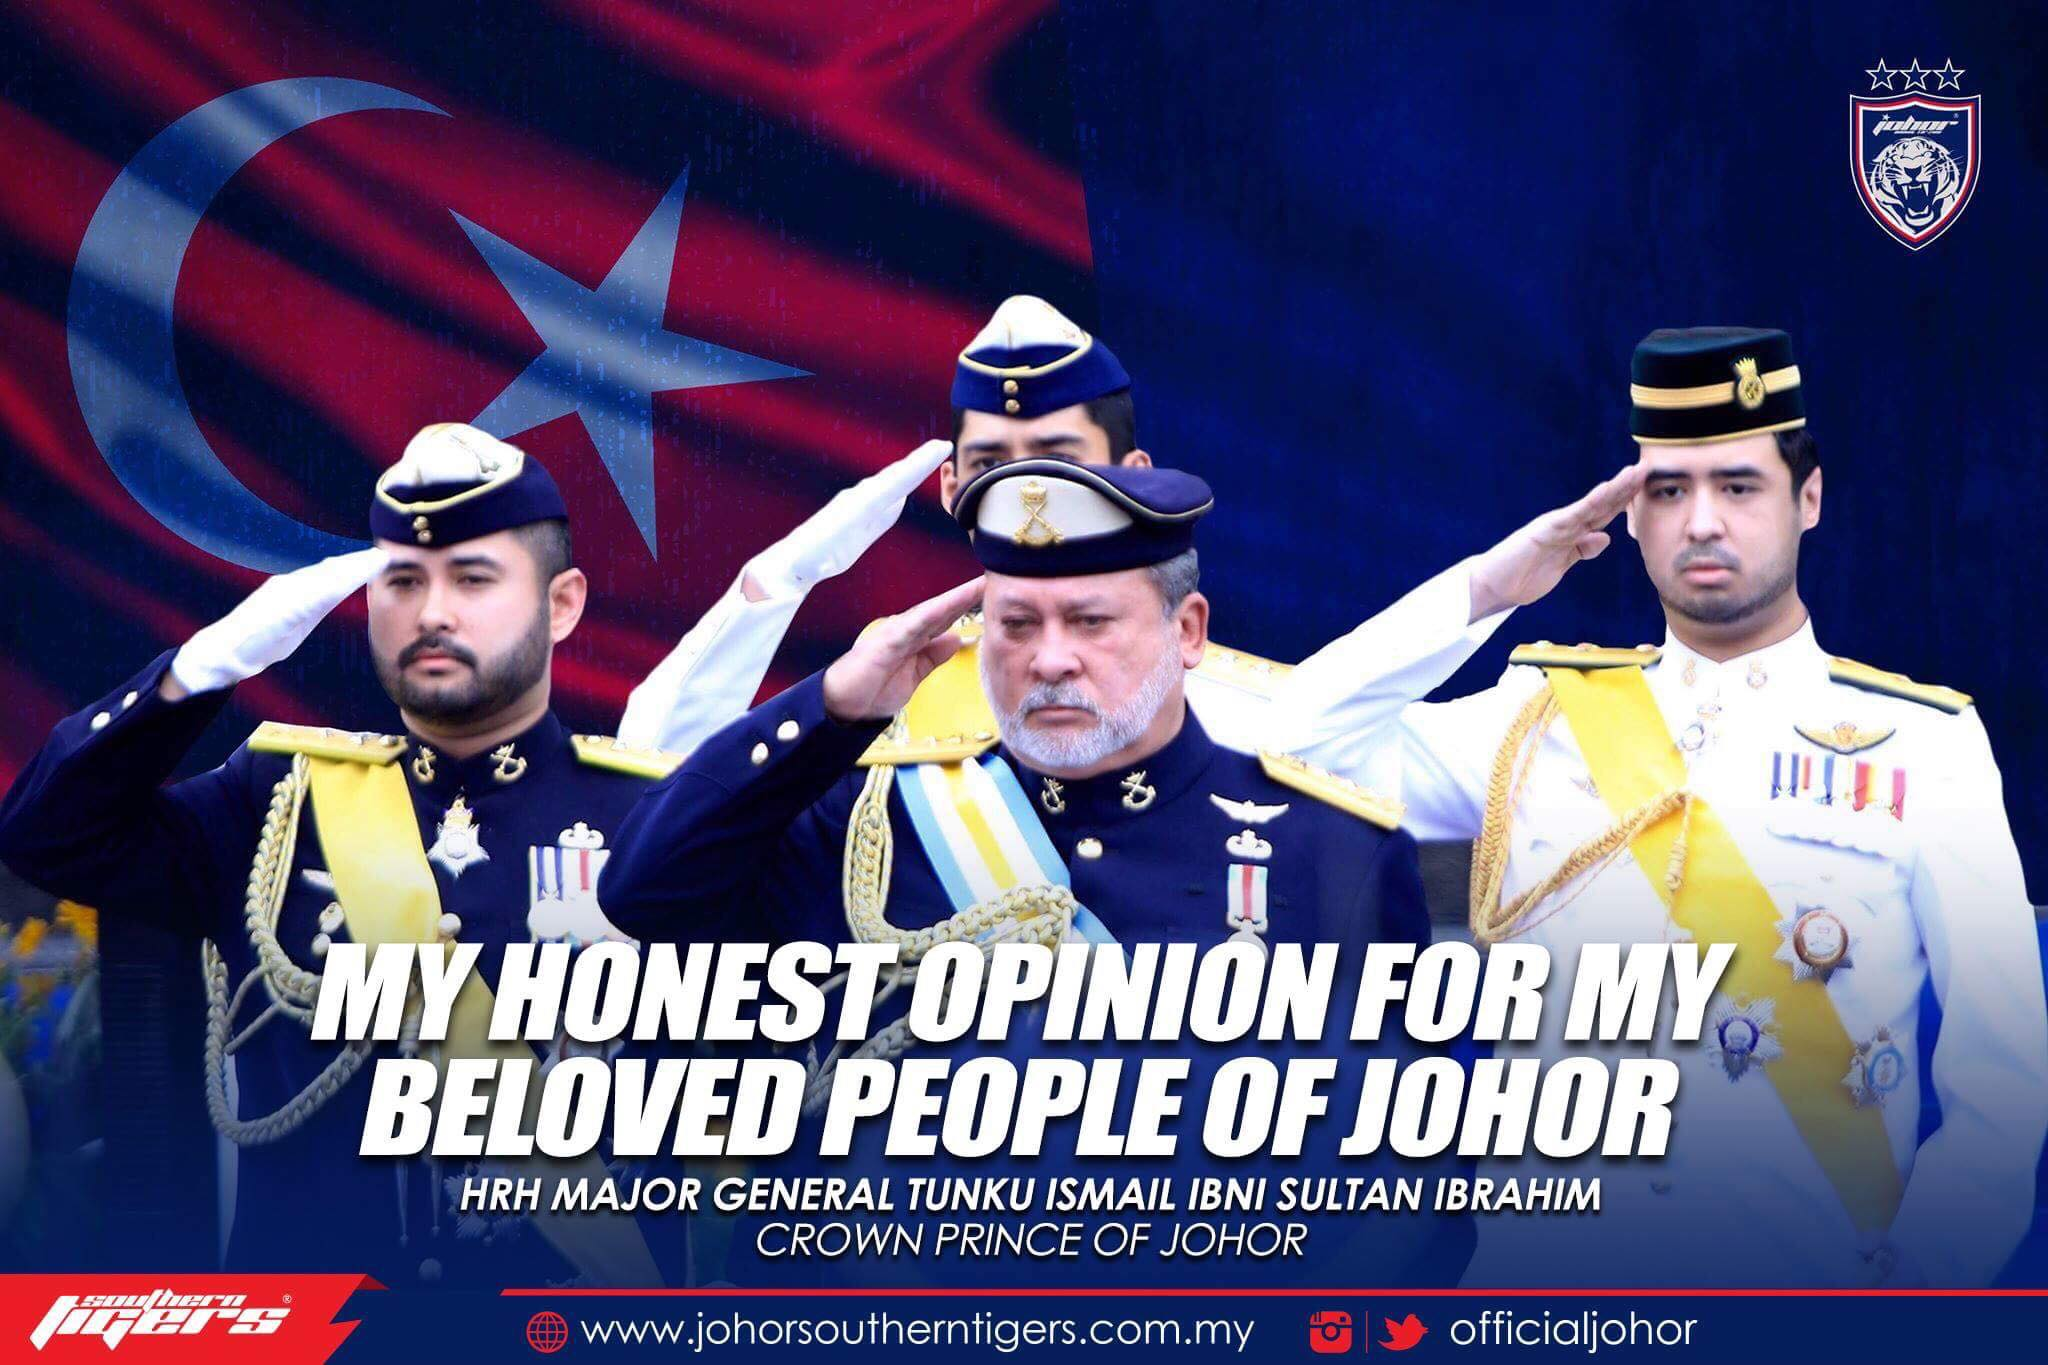 Image from JOHOR Southern Tigers